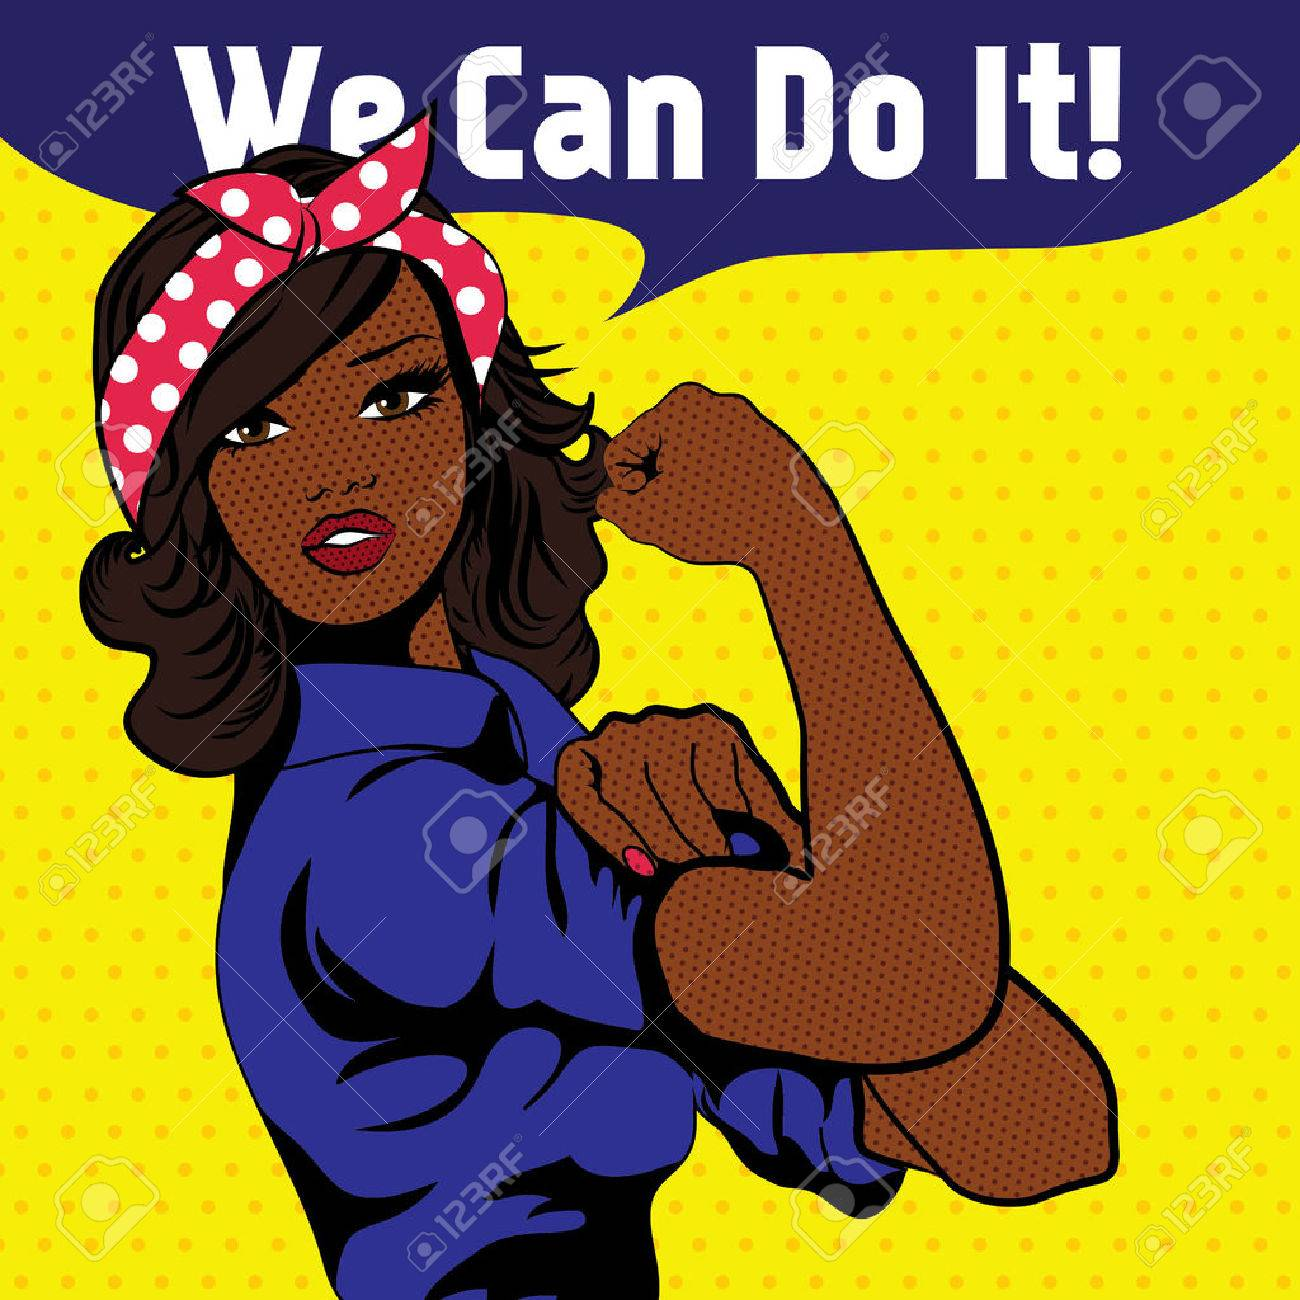 We Can Do It, an iconic woman's fist symbol - 51860629